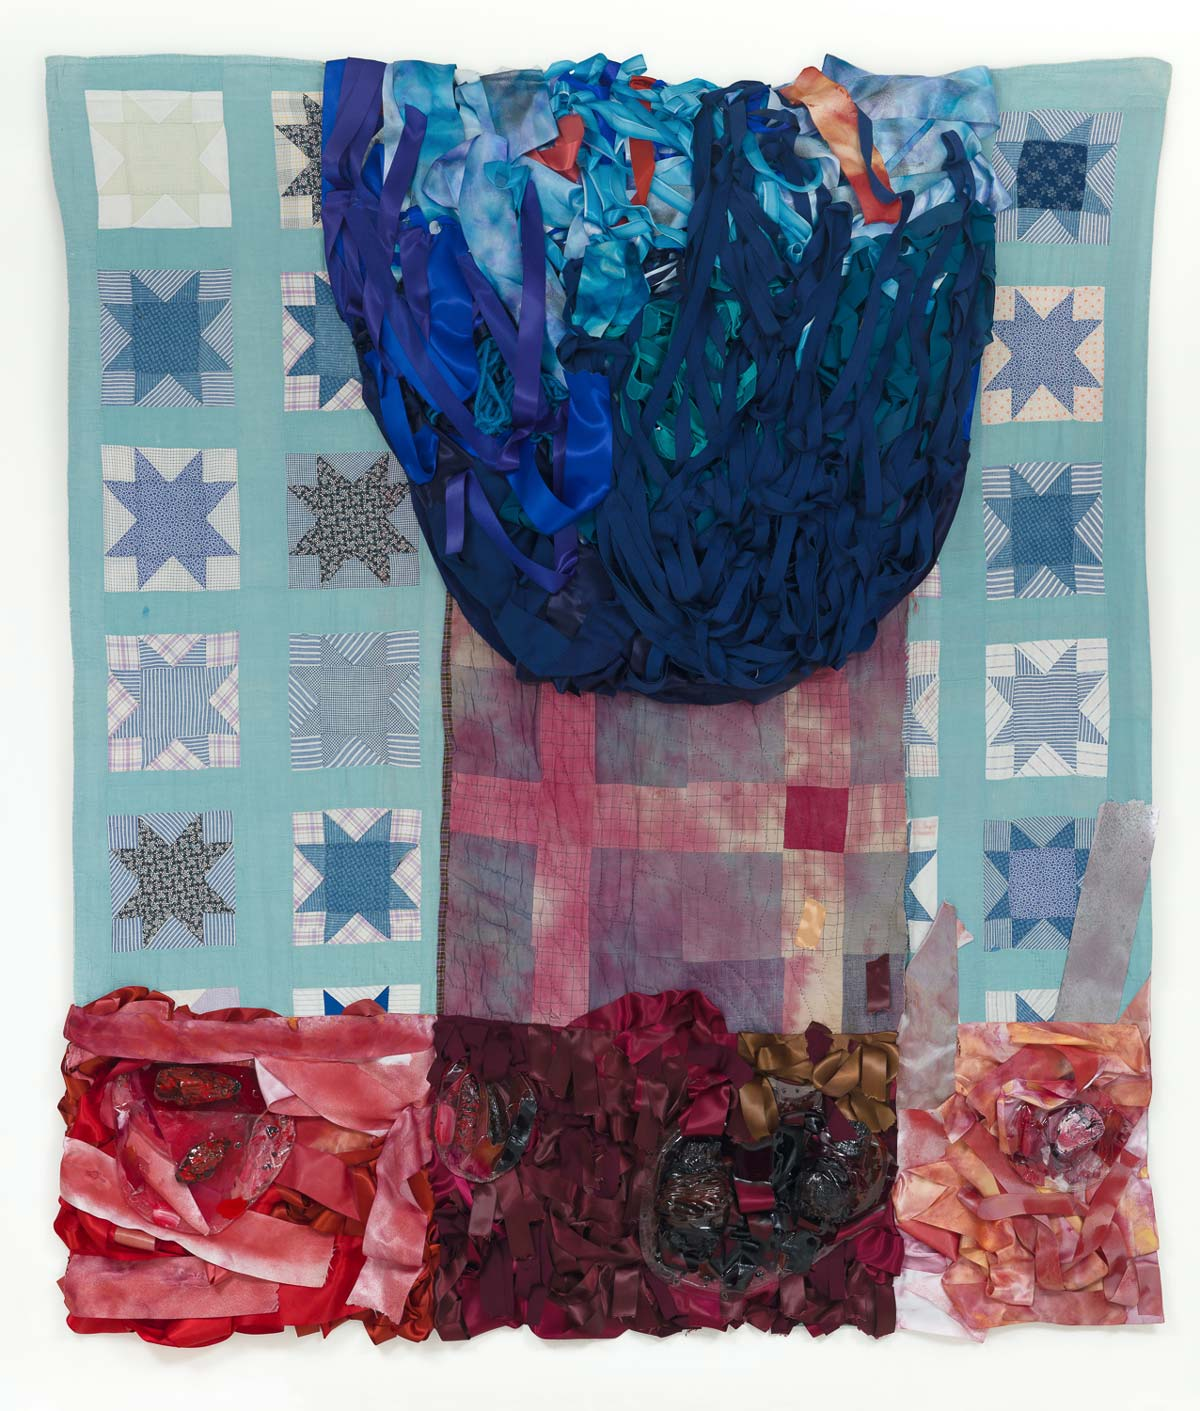 Ritual Heirloom 1, Three Seasons and a Winter Flower, 2017 80 x 72 inches, 2017, hand-stitched quilts, ribbon, fabric dye, charred wood, resin, acrylic paint and mixed media